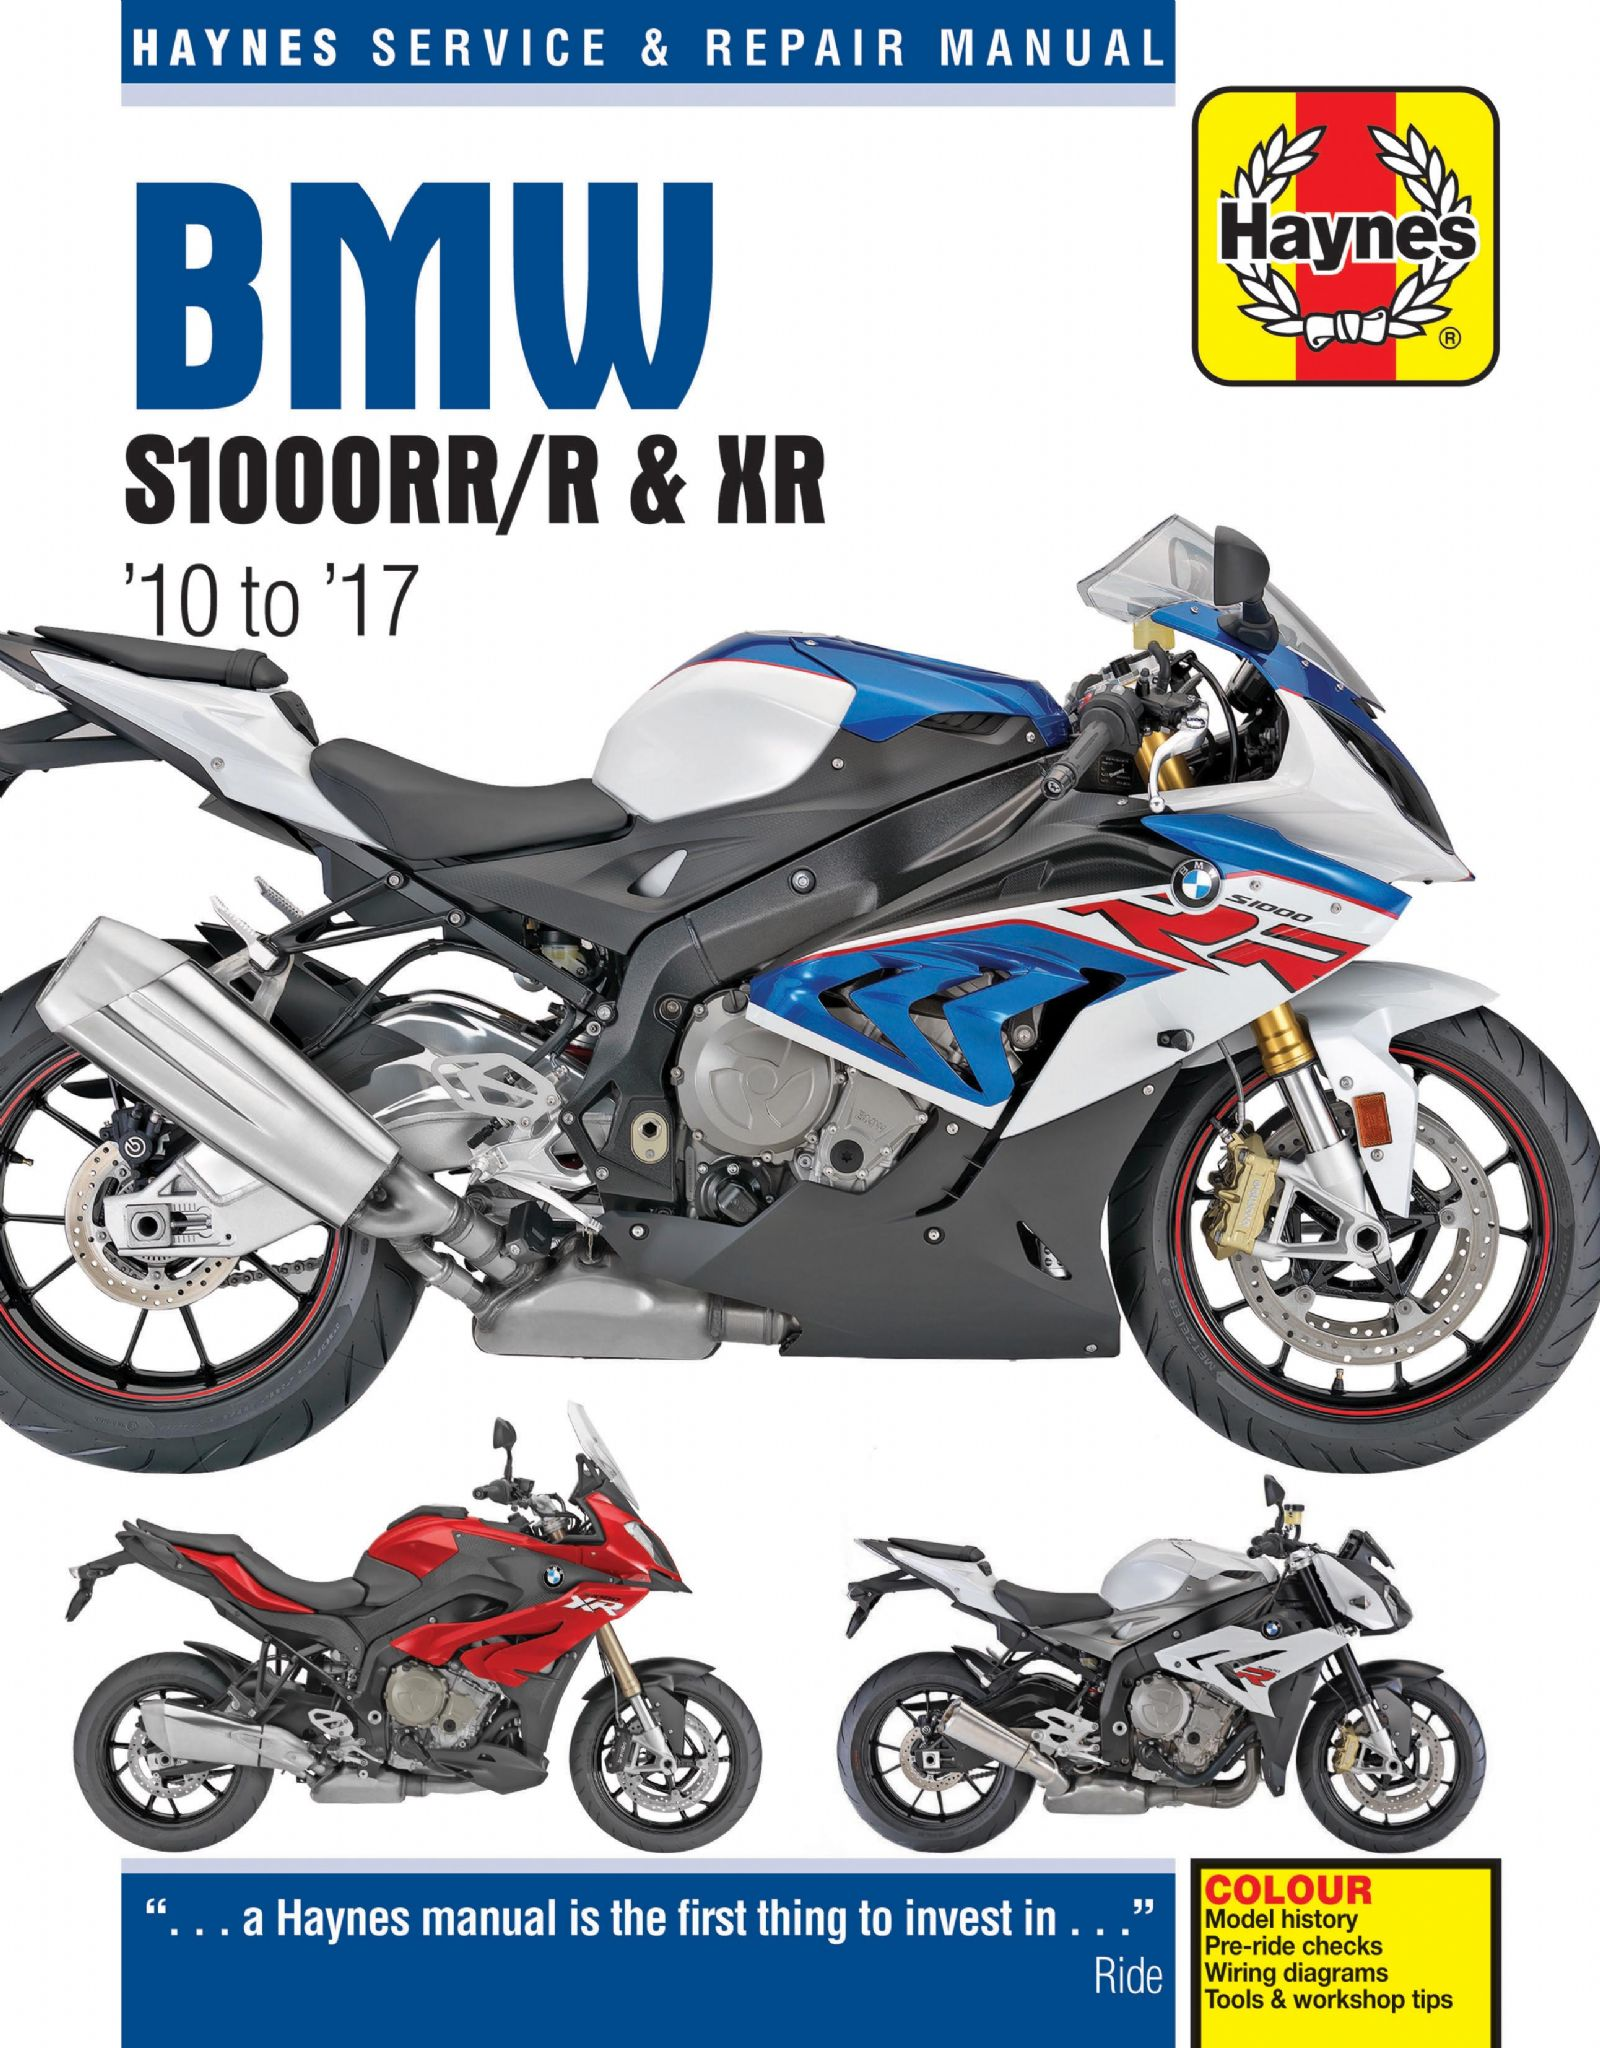 hight resolution of bmw s1000rr r xr 10 to 17 haynes repair manual 2012 bmw s1000rr wiring diagram s1000rr wiring diagram